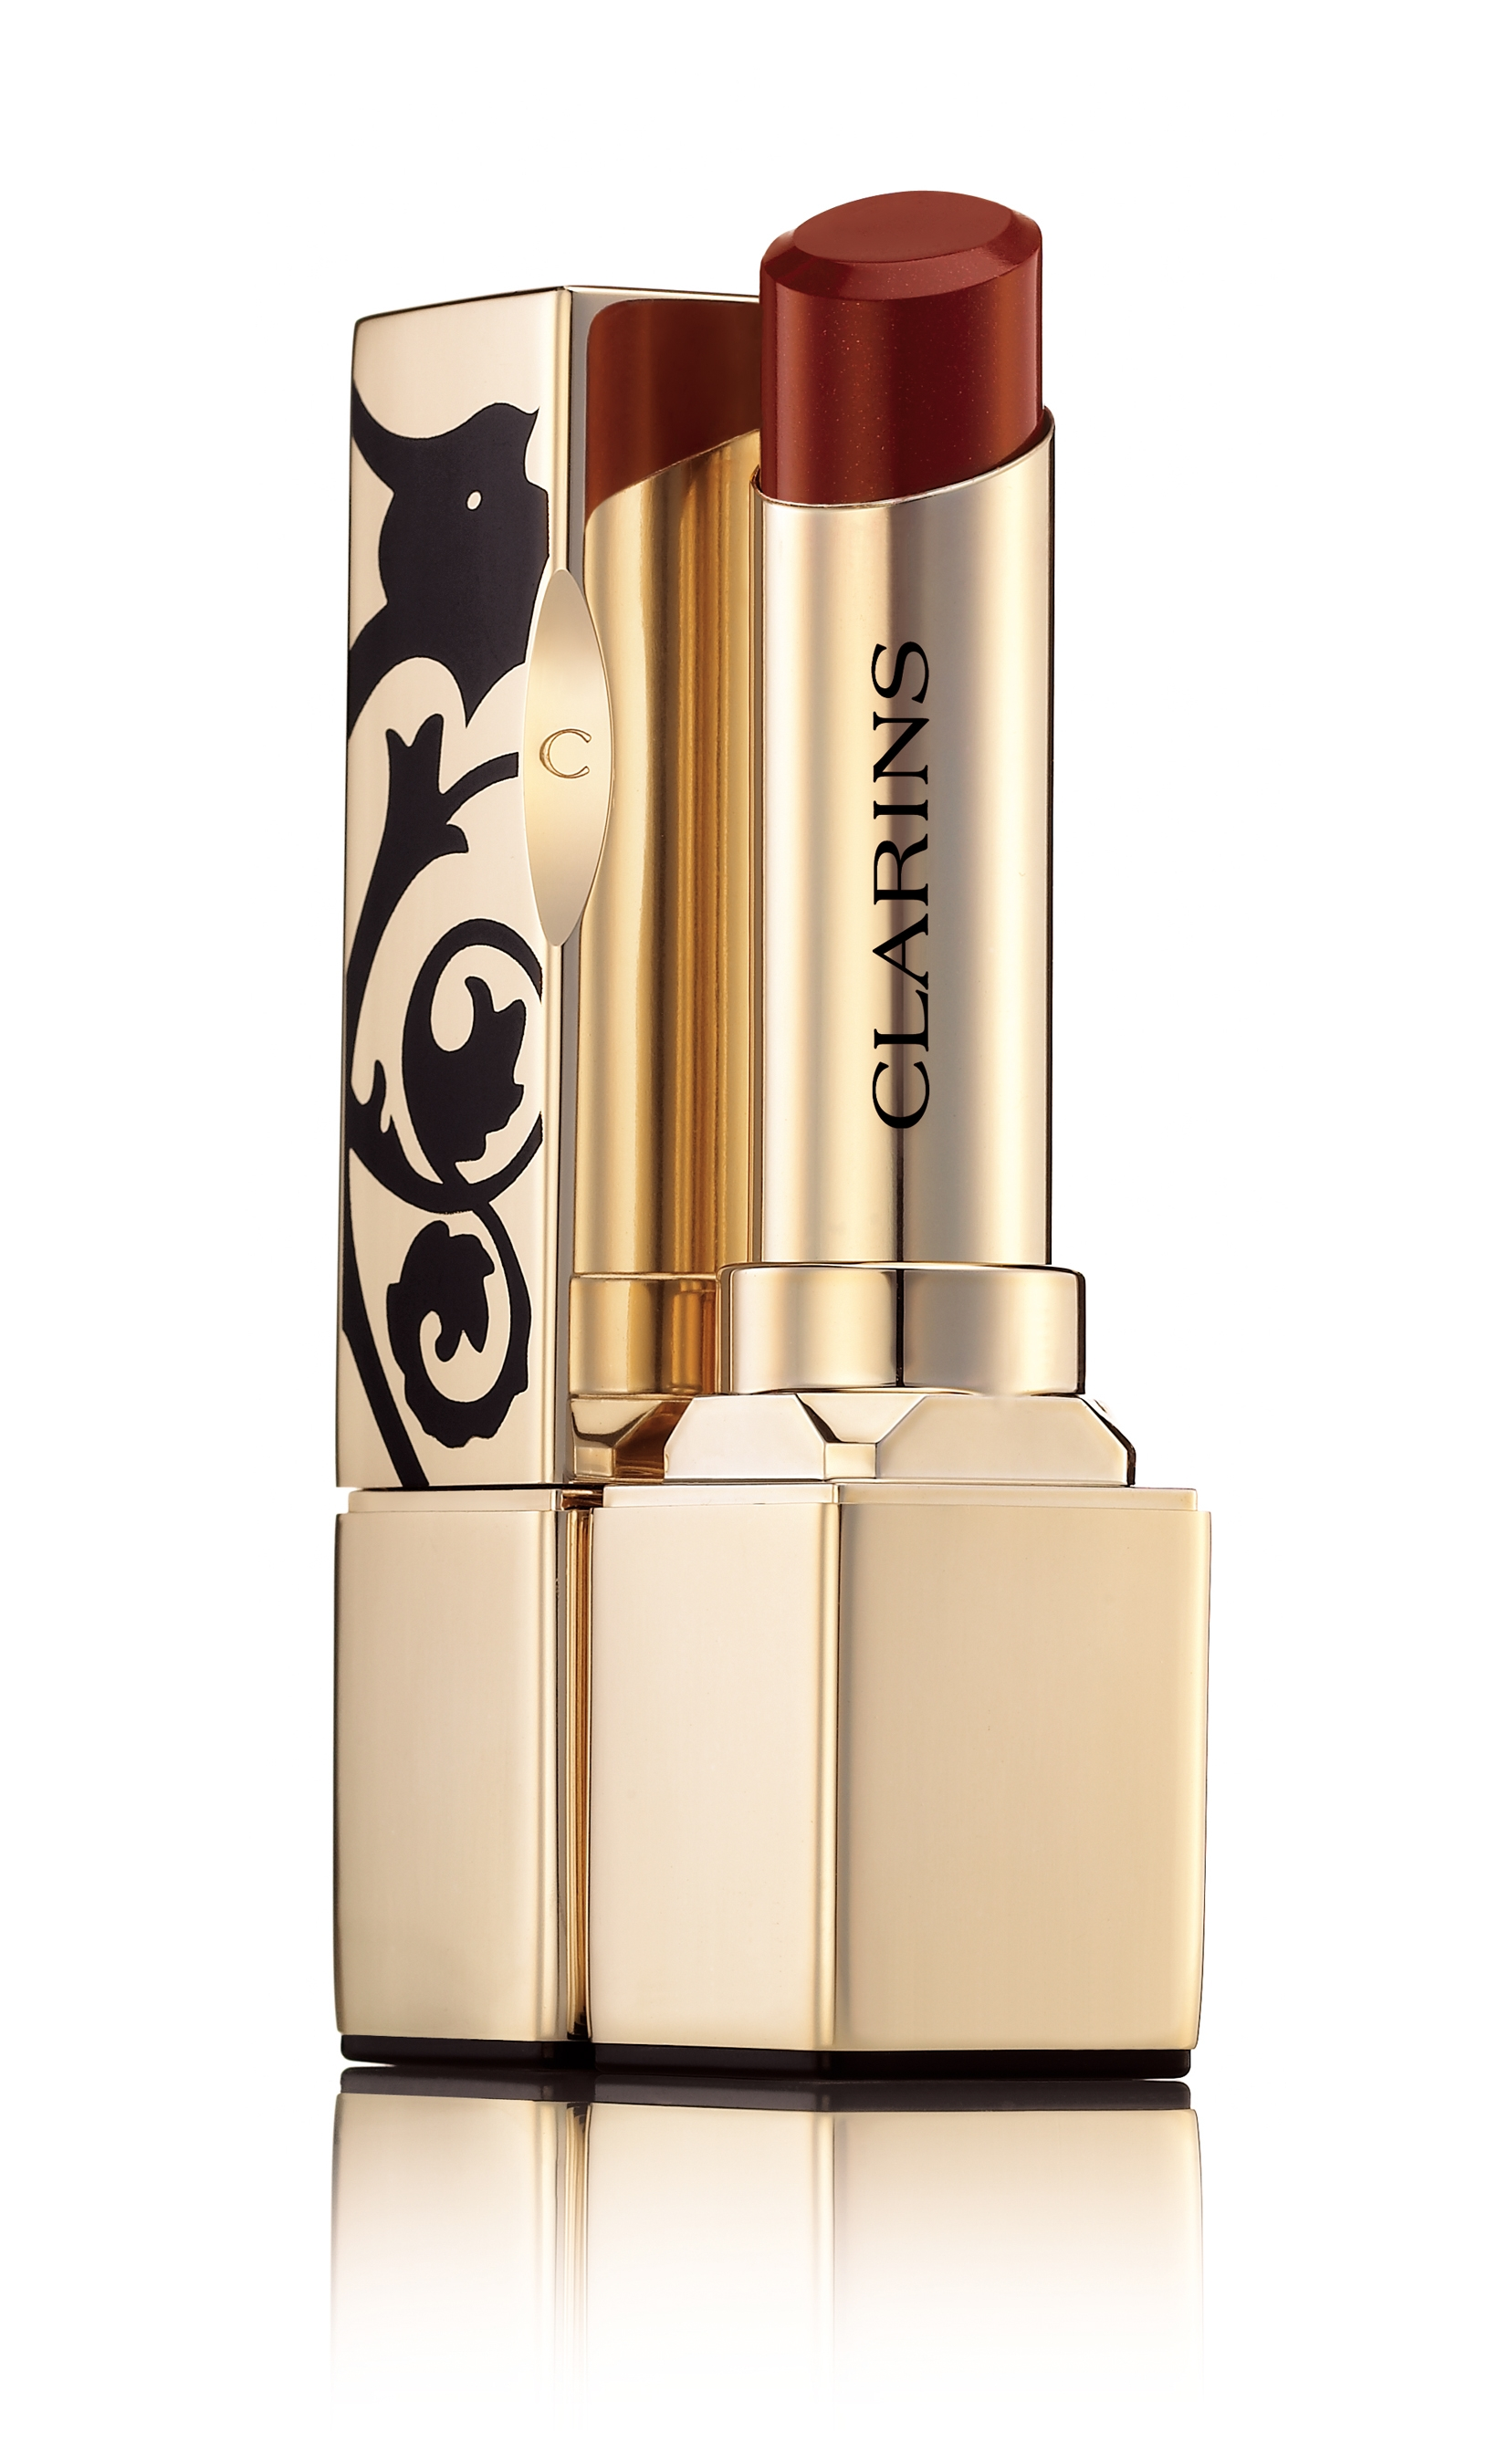 Clarins Colour Definition Fall 2011 Makeup Collection: Clarins Barocco Collection